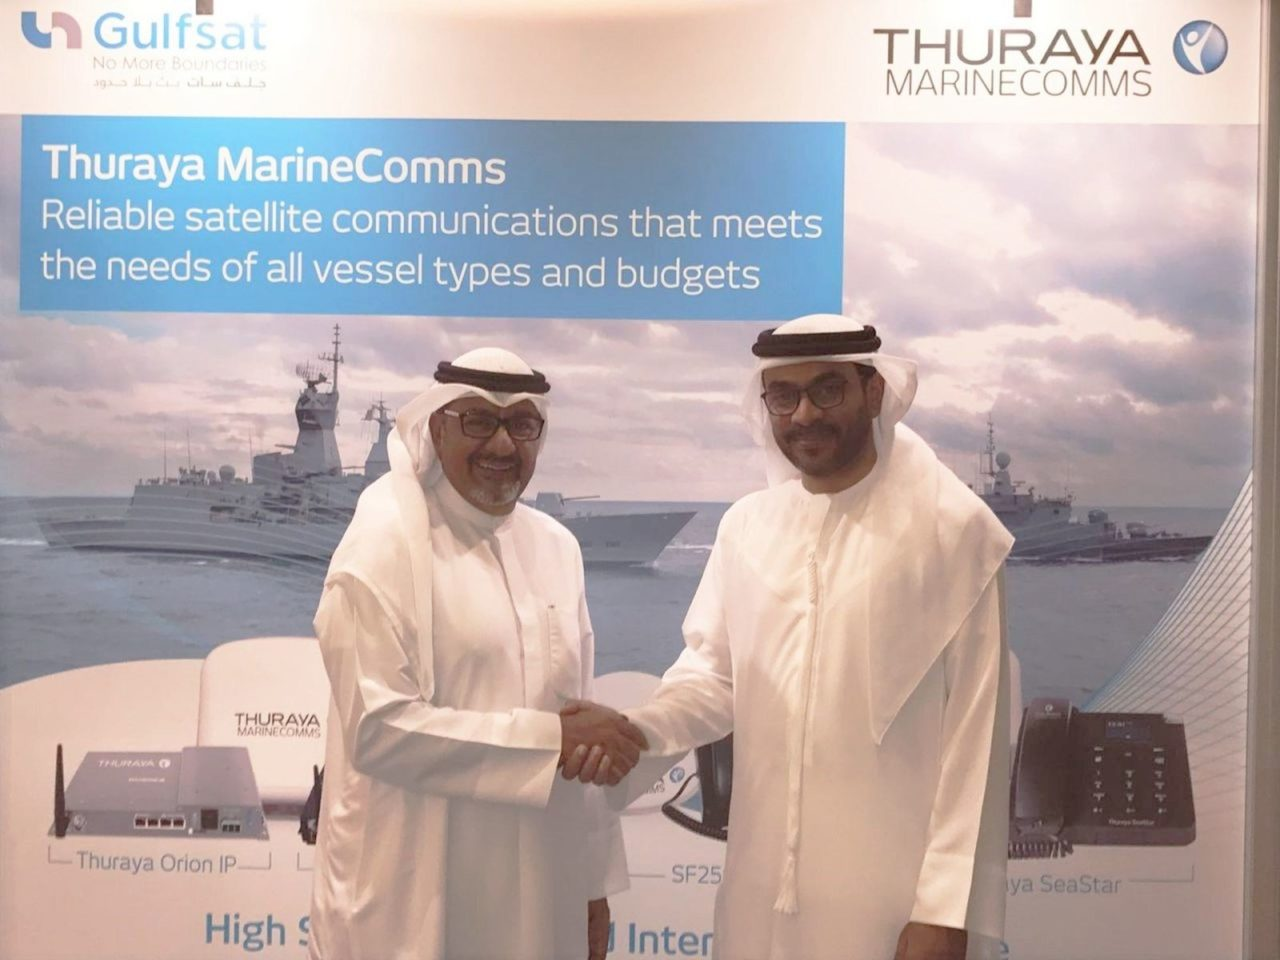 Fahad Kahoor, Thuraya director of market development and Mohammad Al-Haj, Gulfsat chairman and CEO, during the signing of the agreement at OPV Middle East. Photo: Thuraya.